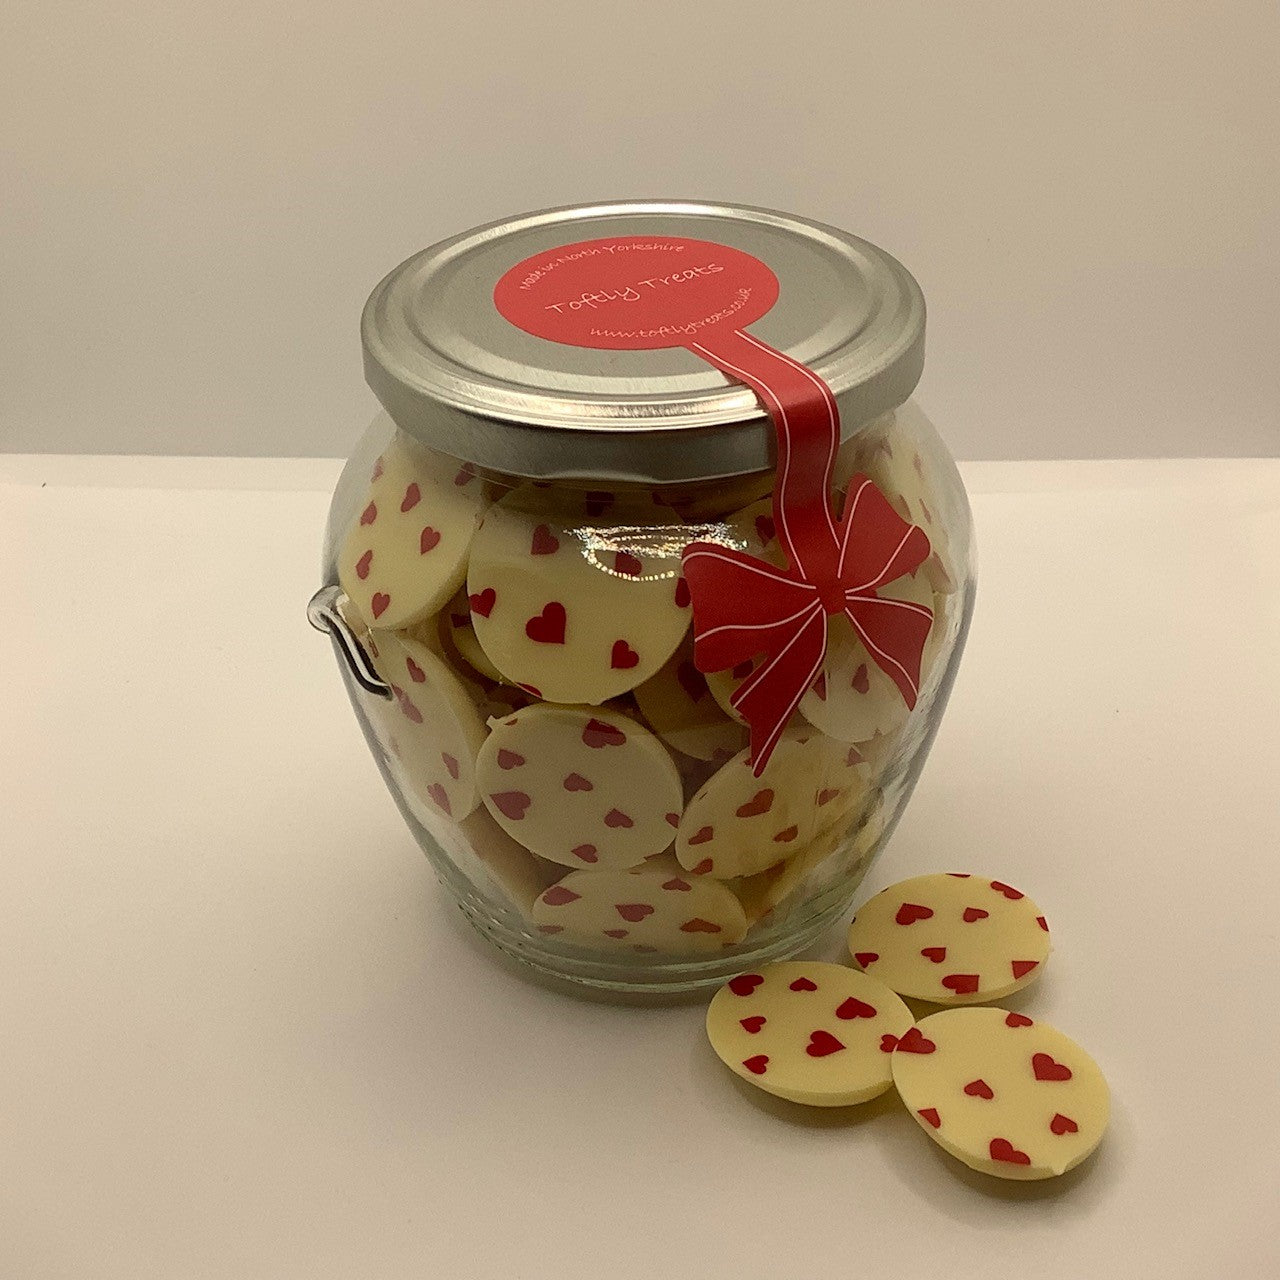 Red Hearts (White chocolate)